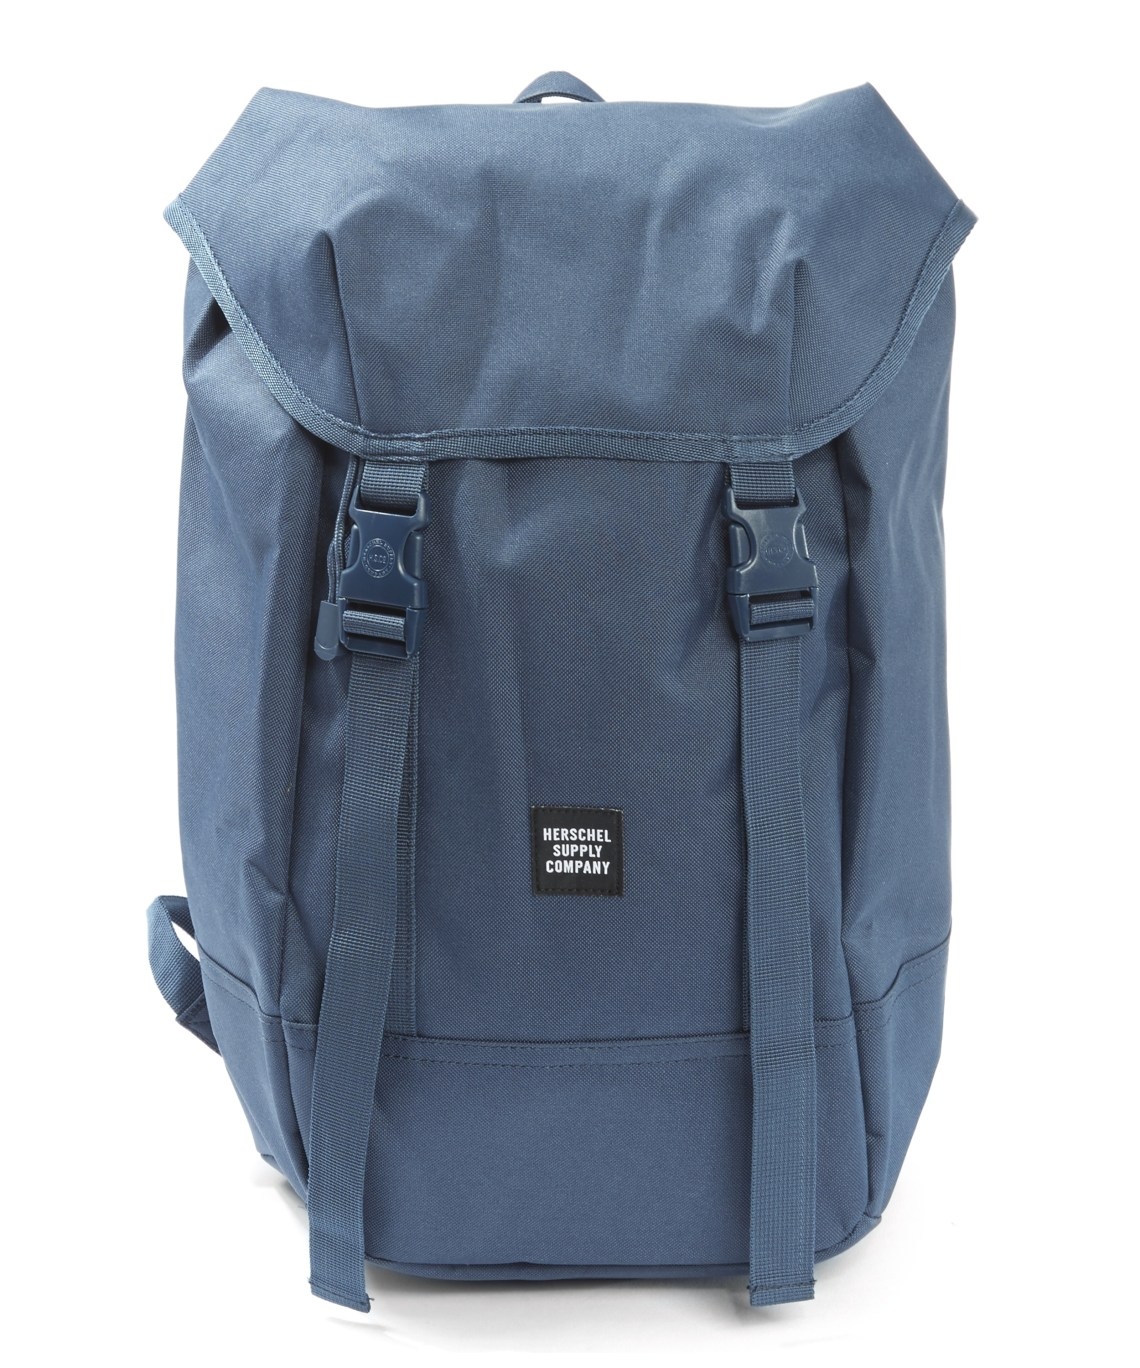 24l Army Bags - R067553006-Navy-b3015178-_Simple 24l Army Bags - R067553006-Navy-b3015178-  Collection_959317.jpeg